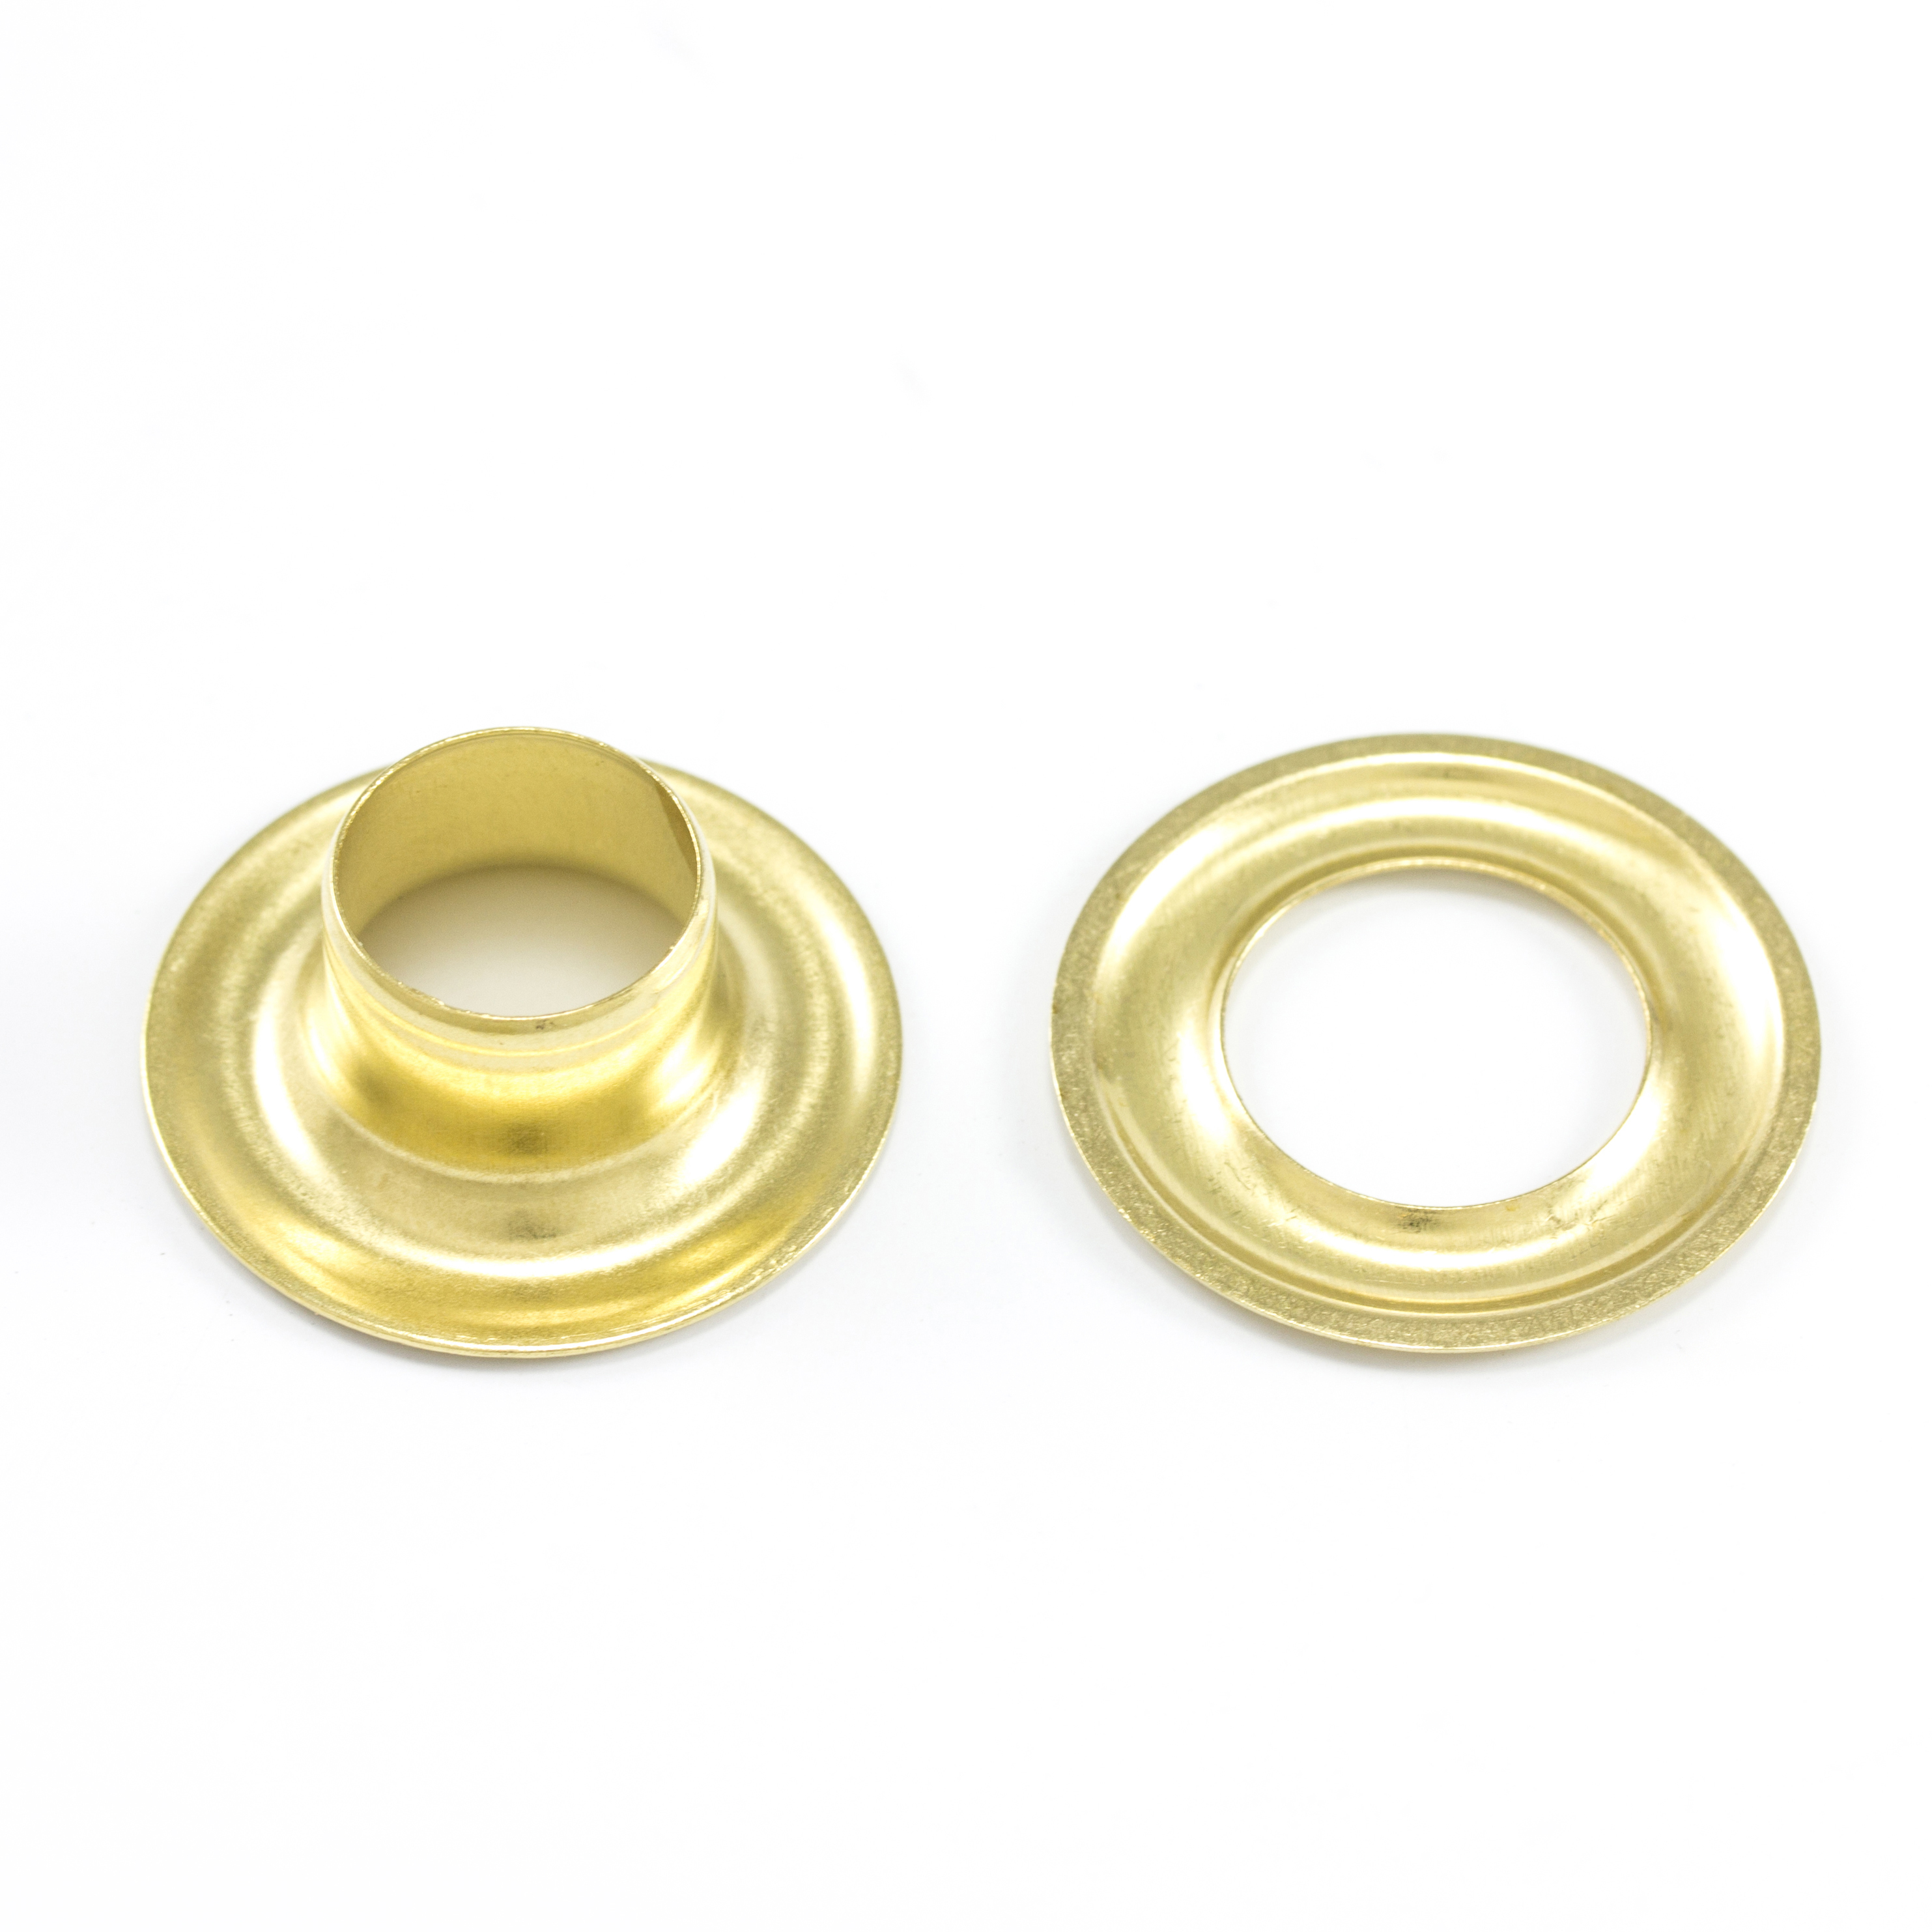 DOT Grommet with Plain Washer #4 Brass 1/2